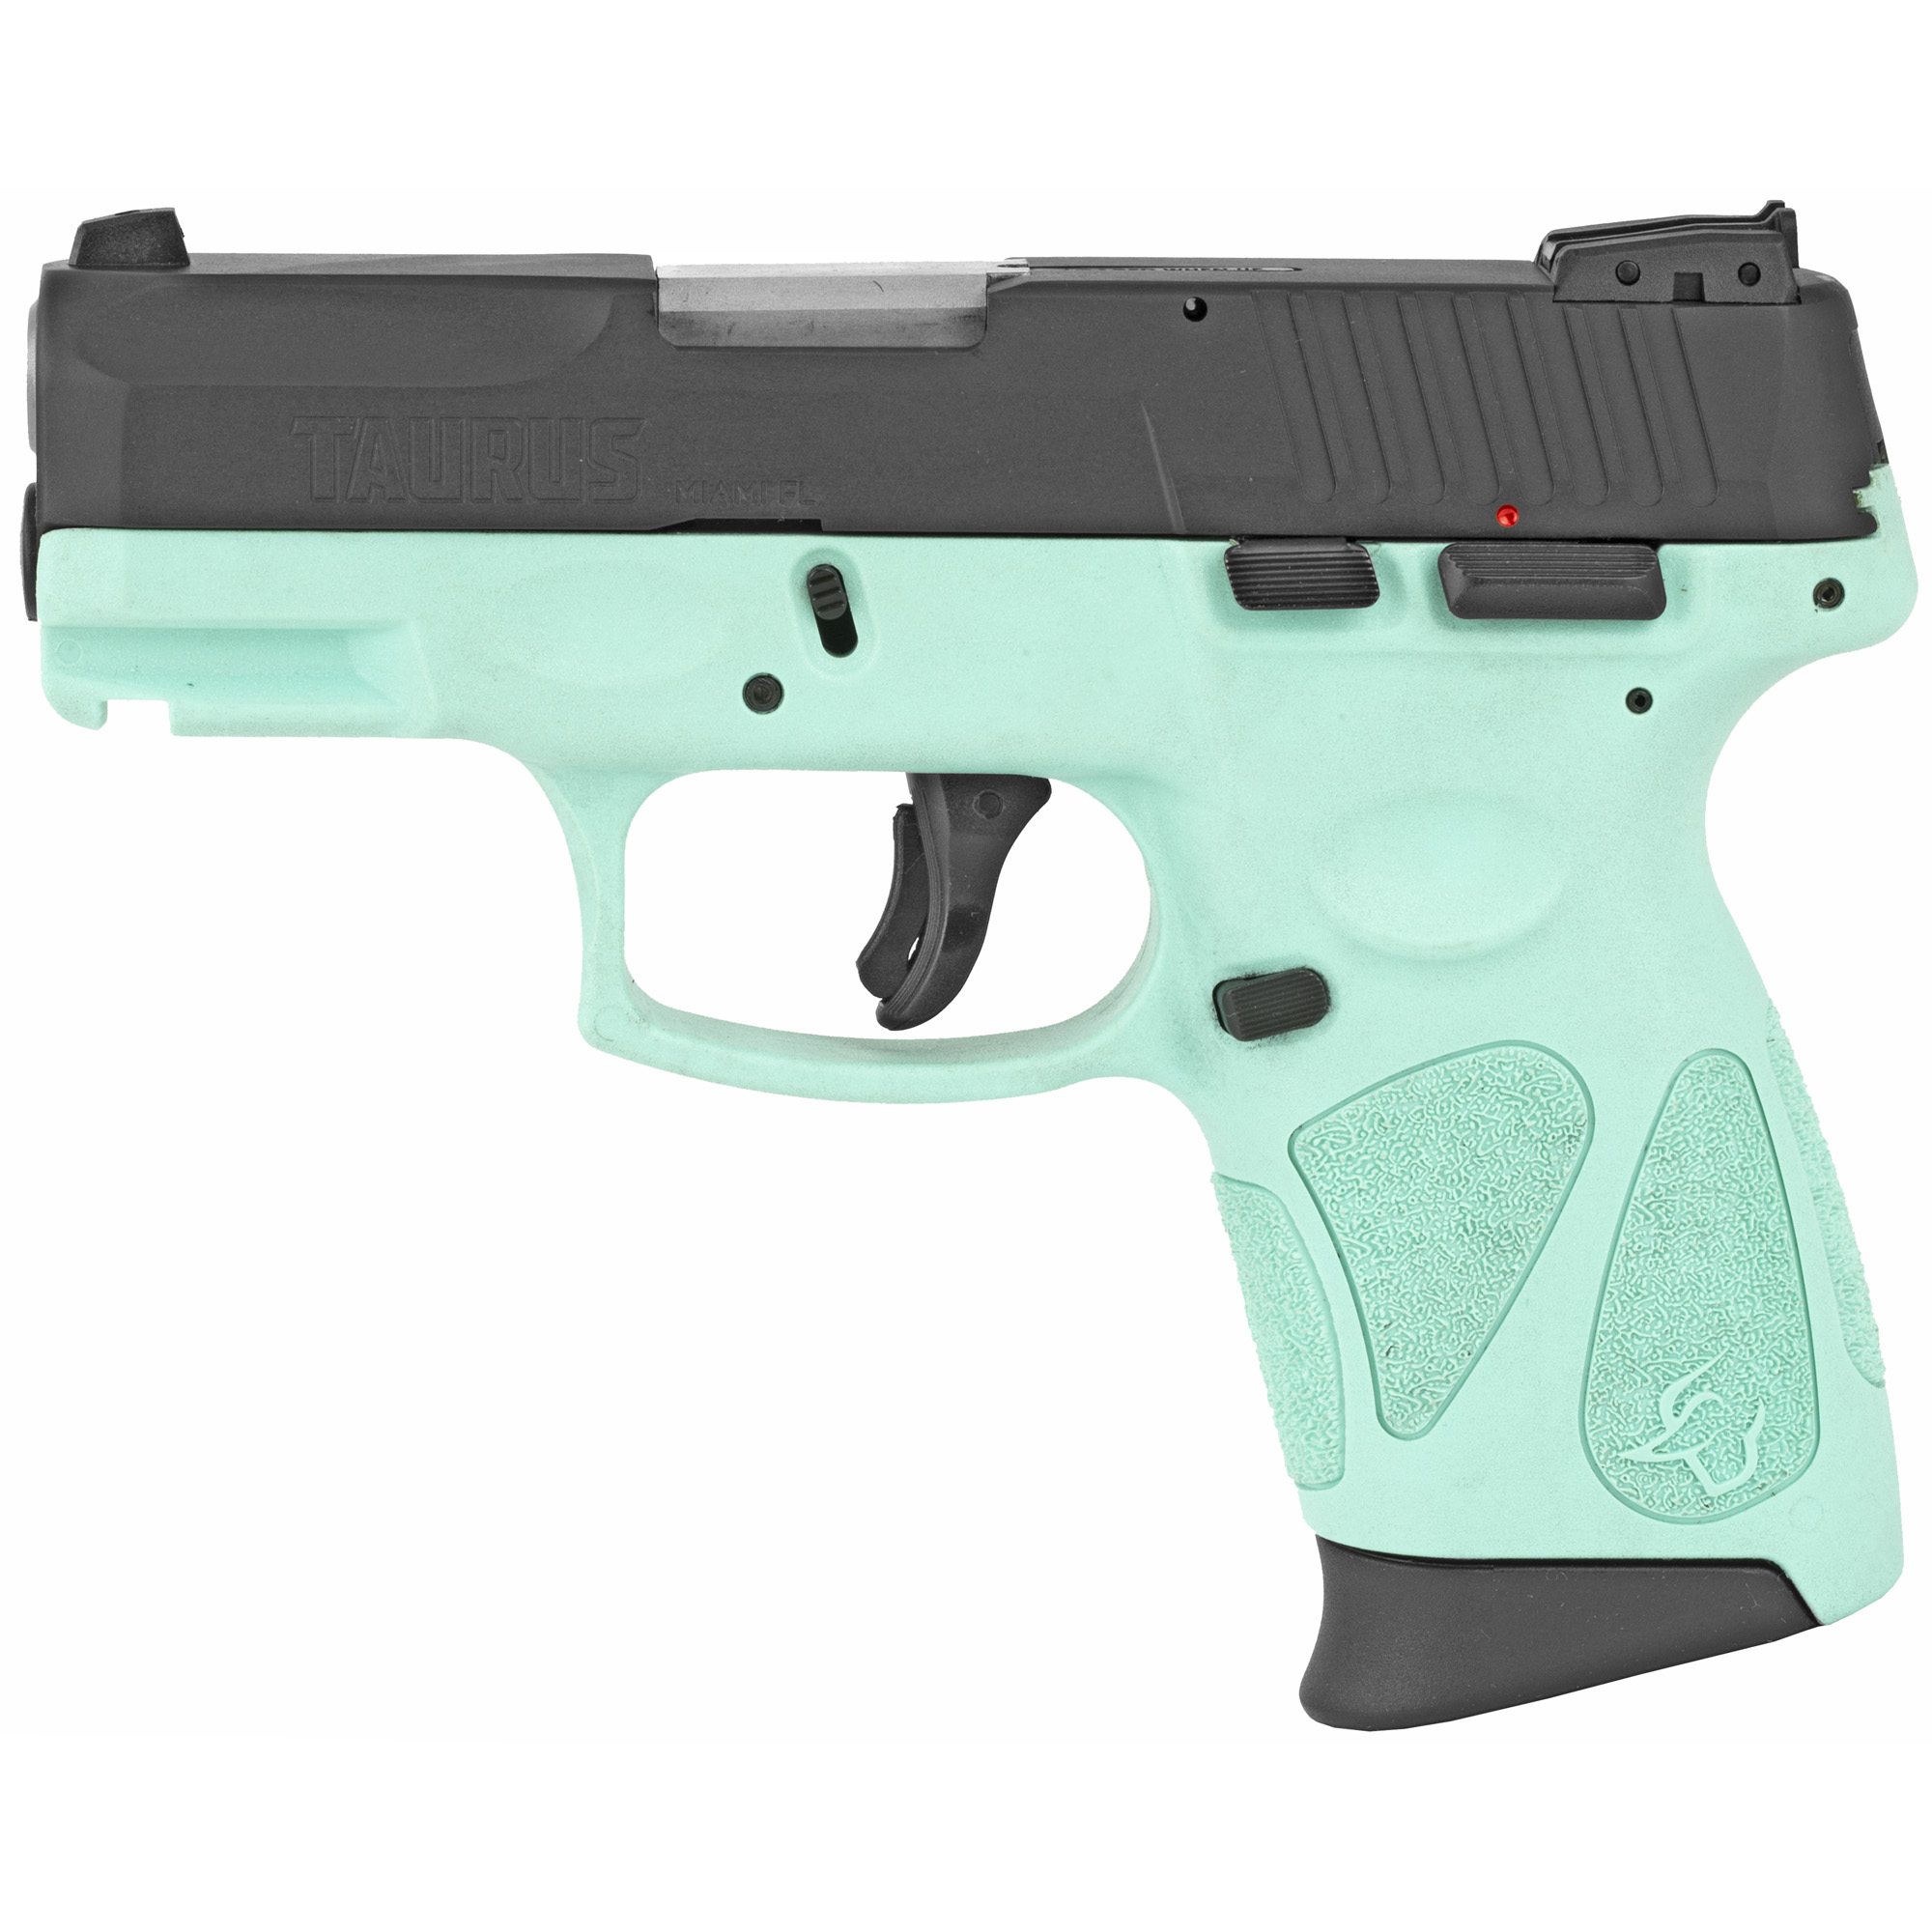 """Chambered in 9mm Luger"""" the new G2C pistols are built on a rugged polymer frame that includes aggressive stippling"""" ergonomically placed along the grip to ensure firearm retention and to maintain positive hand alignment for optimal accuracy. The compact profile (1.25"""" wide x 6.25"""" long x 5.0"""" tall) combined with the 12 round - (9mm Luger) capacity magazines' contoured grip extension delivers a solid"""" comfortable hold for small- or large-hand shooters. Operation of the G2C is straightforward"""" thanks to a striker-fire"""" double-action trigger system that includes restrike capability. A manual"""" external safety is located conveniently above the thumb for quick manipulation in stressful conditions. The reversible magazine release is also ergonomically positioned for rapid"""" one-hand mag drops during tactical mag changes. Integrated into the G2C frame is a Mil-STD 1913 Picatinny rail to accept an accessory light or a laser. The 9mm Luger G2C models are offered with either a matte black carbon steel slide or with a matte stainless-steel slide. The slide contours blend with the frame to promote a smooth"""" snag-free draw and re-holster. Precision-cut slide serrations provide a no-slip grip when charging the pistol. Topping the slide is a fixed white dot front sight and a dual white dot rear sight with elevation and windage adjustment."""